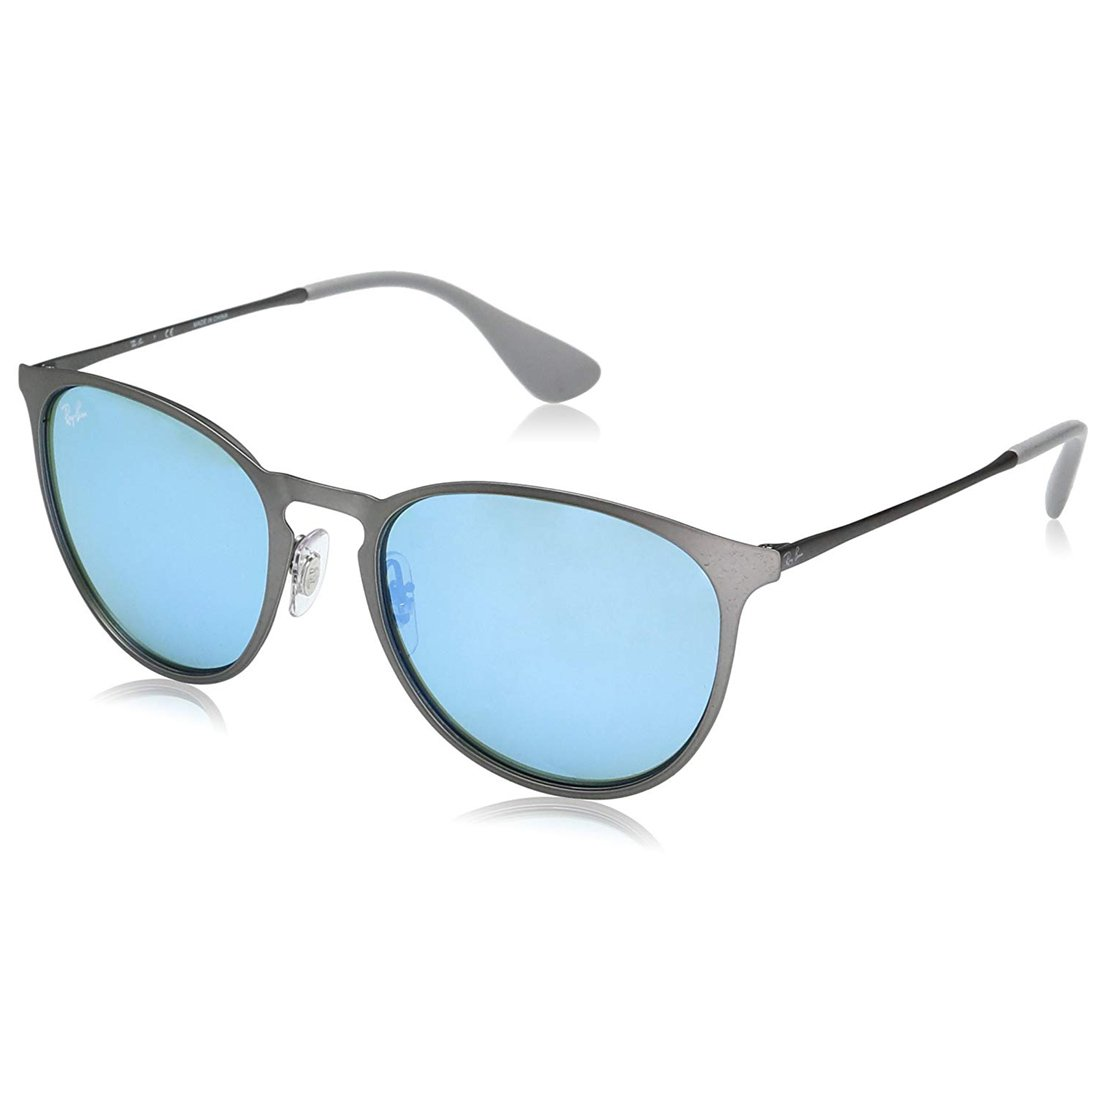 fa96b4fda0 Details about Ray-Ban RB3539-54 Erika Metal Sunglasses